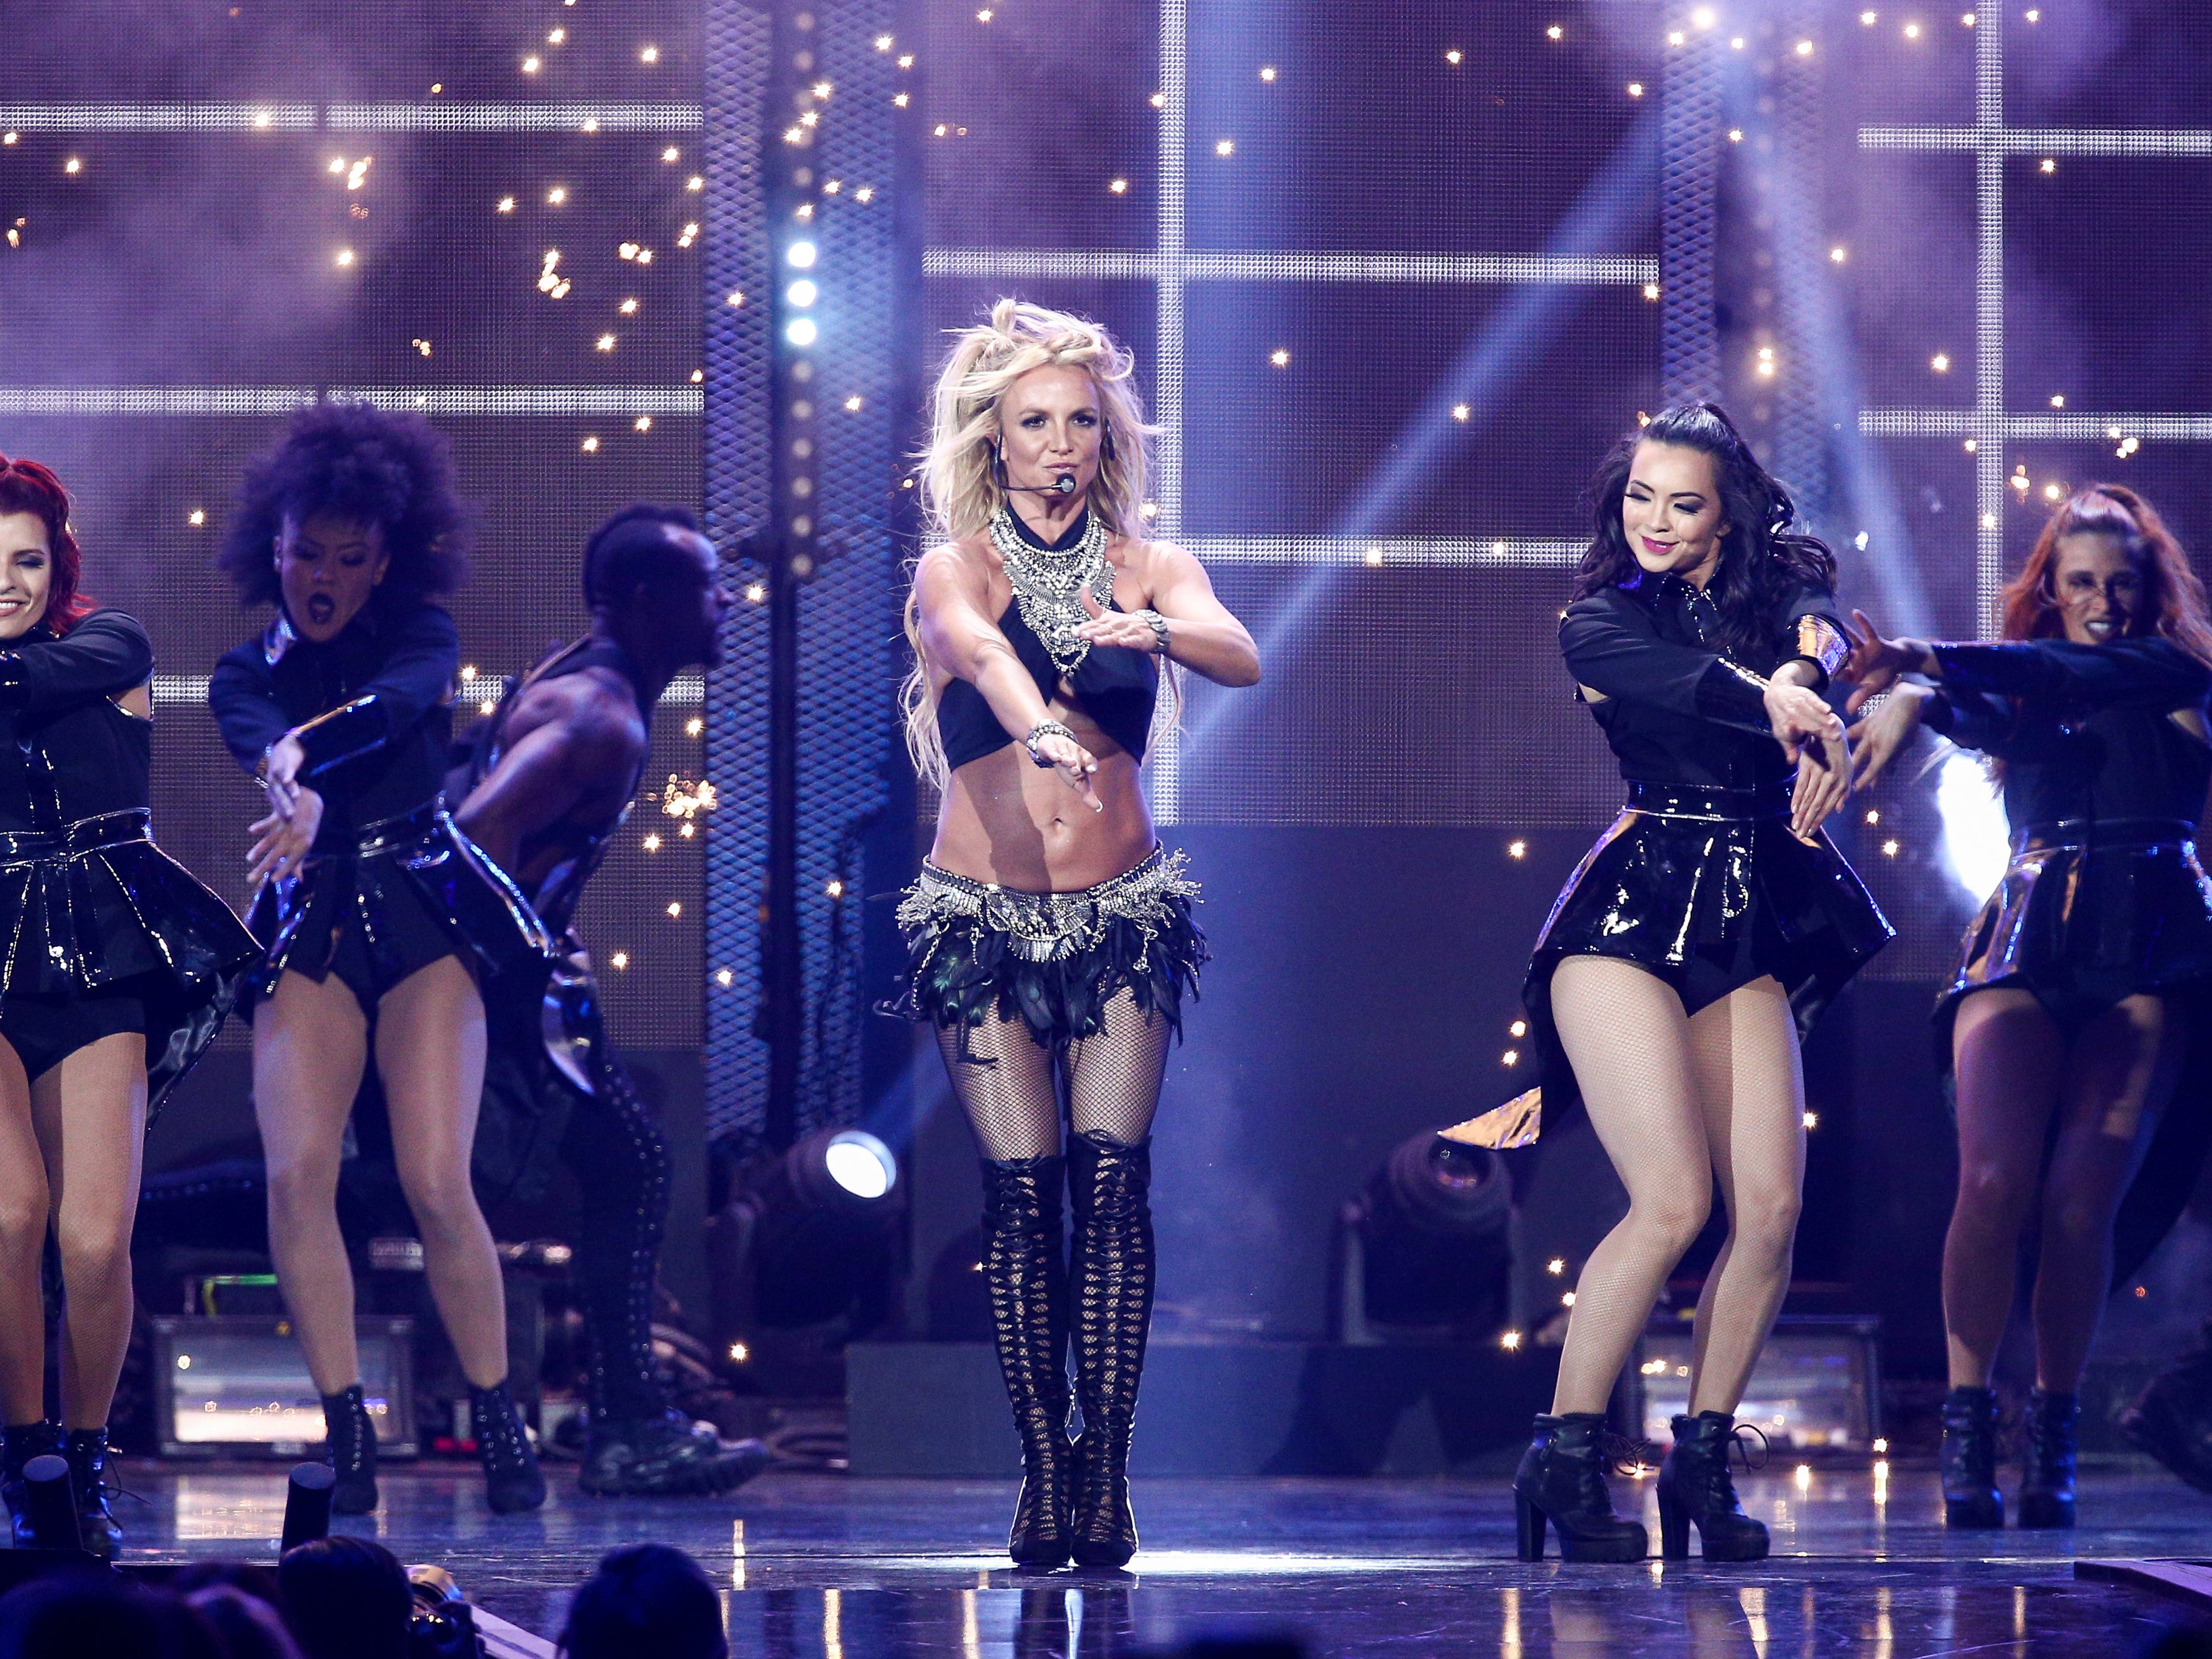 FILE - In this Sept. 24, 2016 file photo, Britney Spears performs at the 2016 iHeartRadio Music Festival - Day 2 held at T-Mobile Arena  in Las Vegas. Spears is donating some of her Las Vegas show ticket sales to Louisiana schools for flood recovery. The Kentwood, Louisiana native announced that $1 of every ticket sold through the end of the year will go to public schools in a partnership with the Louisiana School Boards Association. (Photo by John Salangsang/Invision/AP) ORG XMIT: NY115